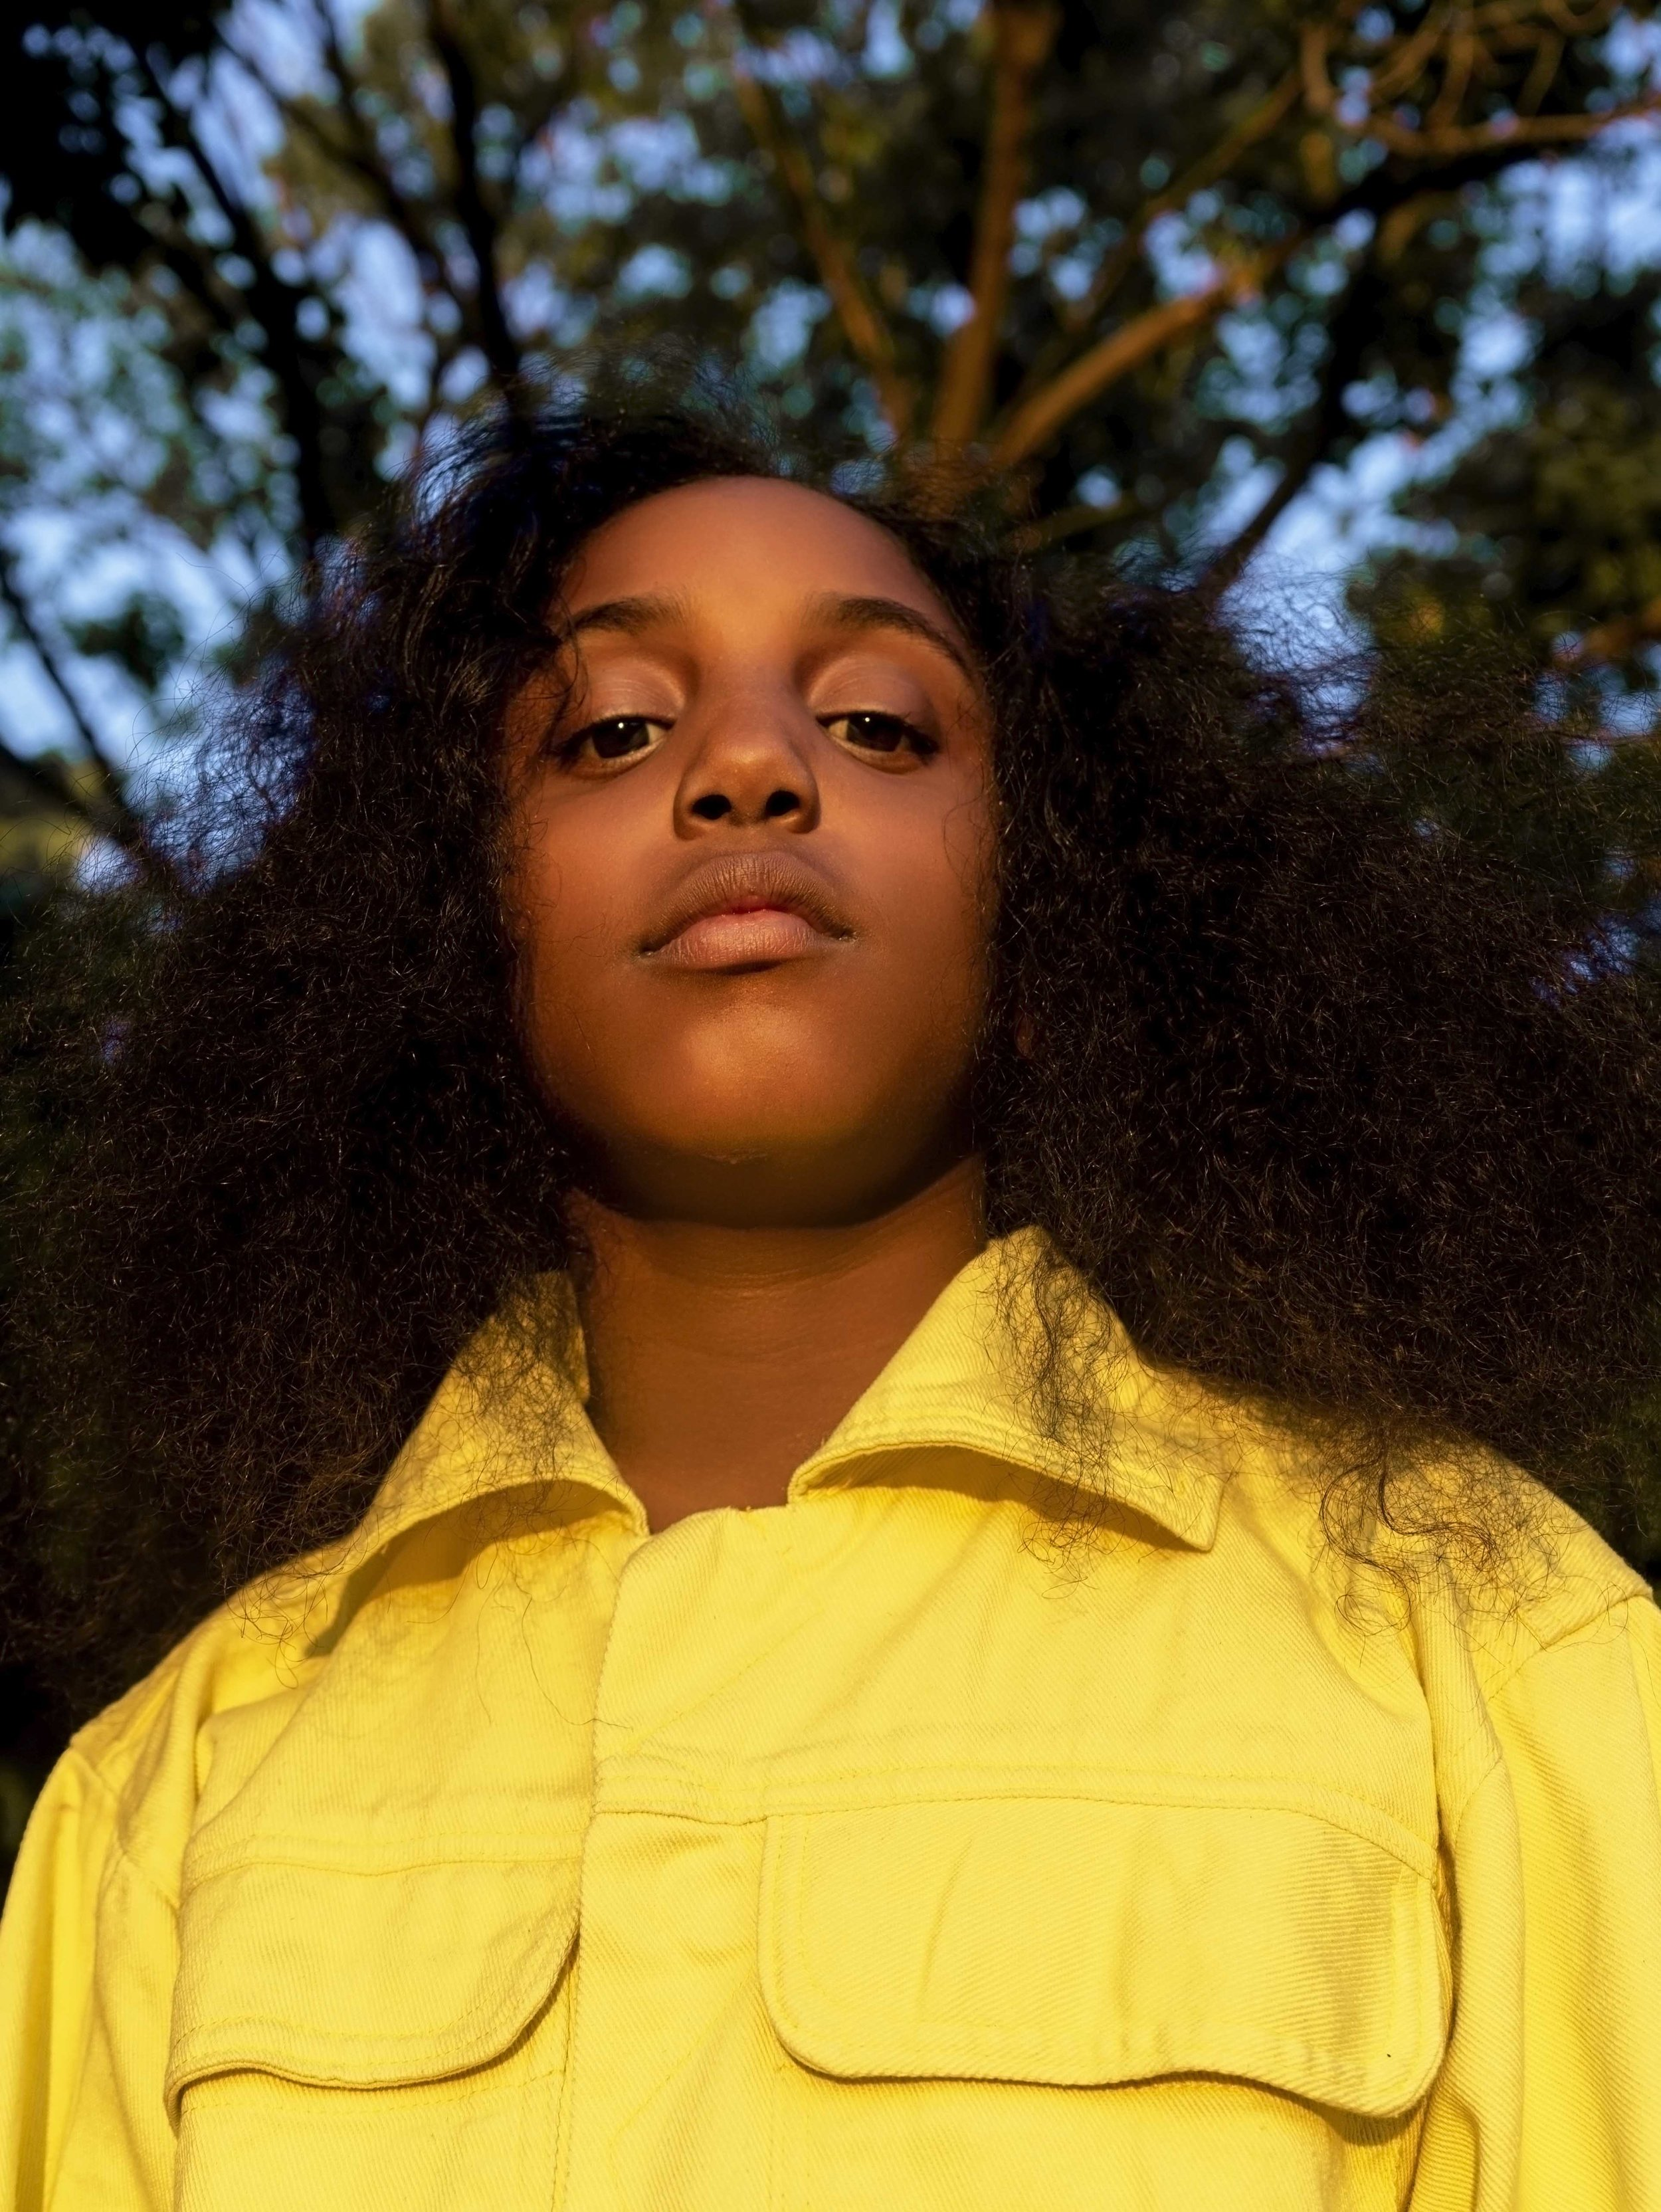 Portrait of Tayla by Cole Ndelu 4.jpg